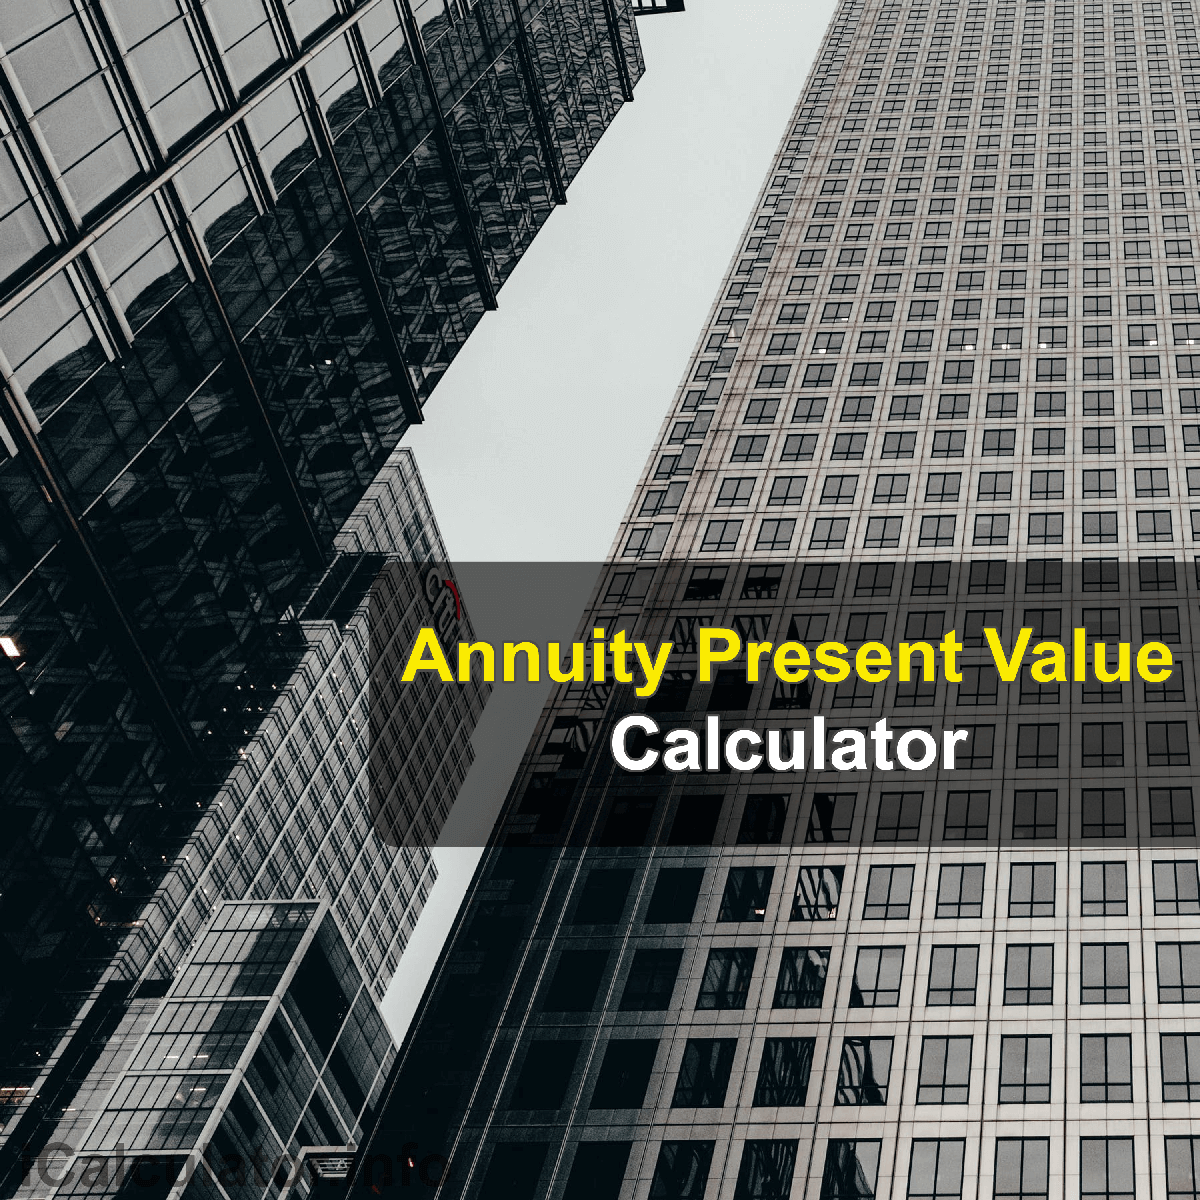 Present Value of Annuity Calculator. This image provides details of how to calculate the present value of an annuity using a calculator and notepad. By using the present value of an annuity formula, the Present Value of Annuity Calculator Calculator provides a true calculation of the current value of future payments that could be received.